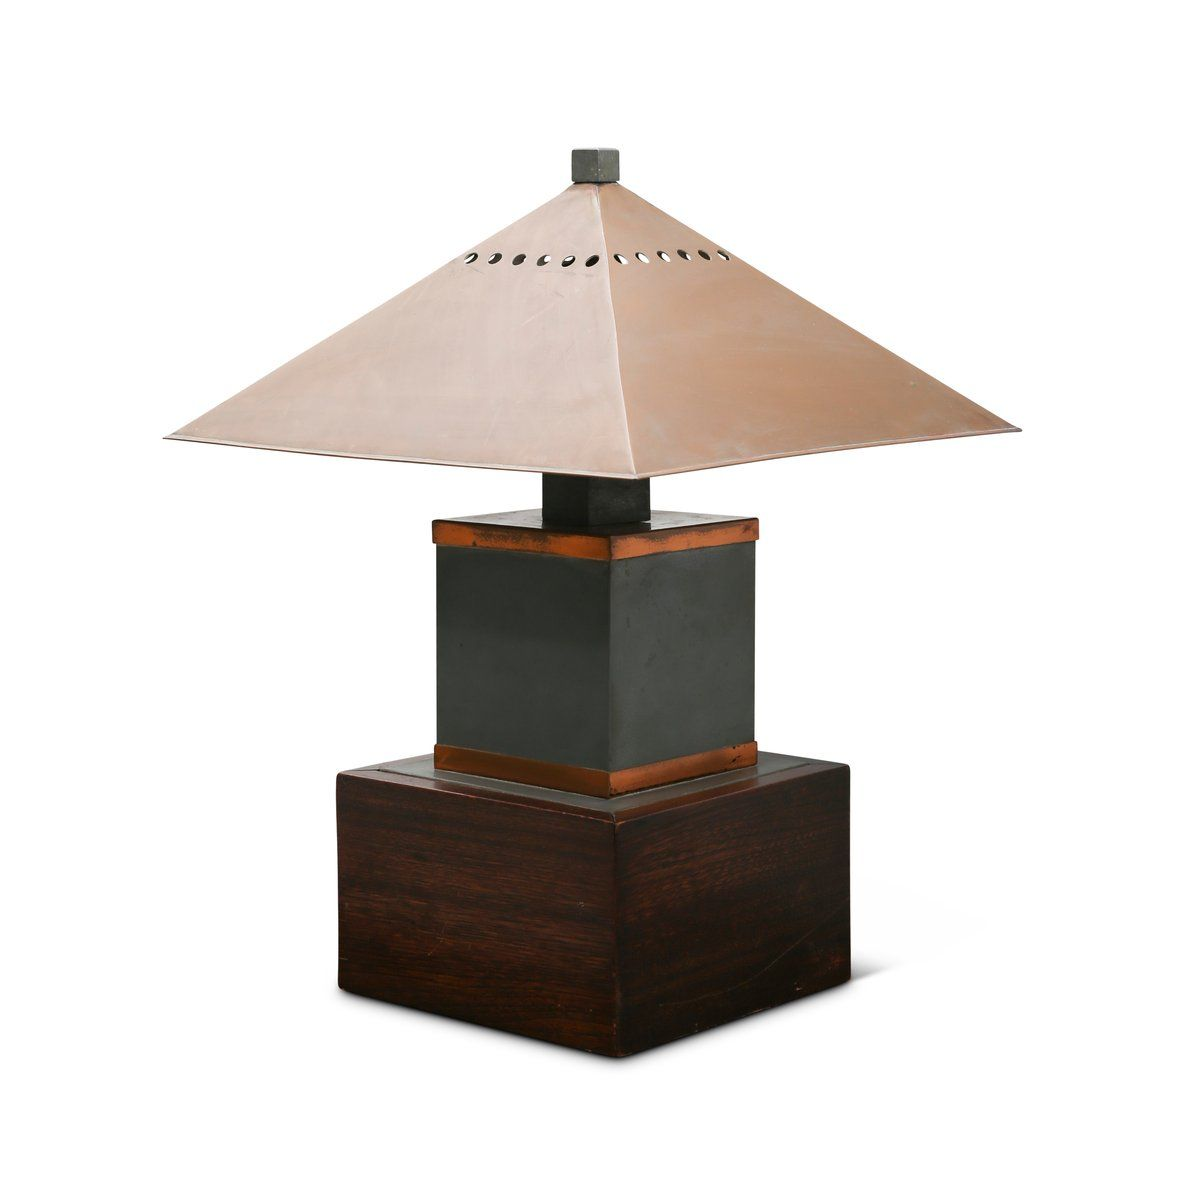 1930 S Copper And Mahogany Table Lamp In 2020 Table Lamp Antique Table Lamps Table Lamps For Sale